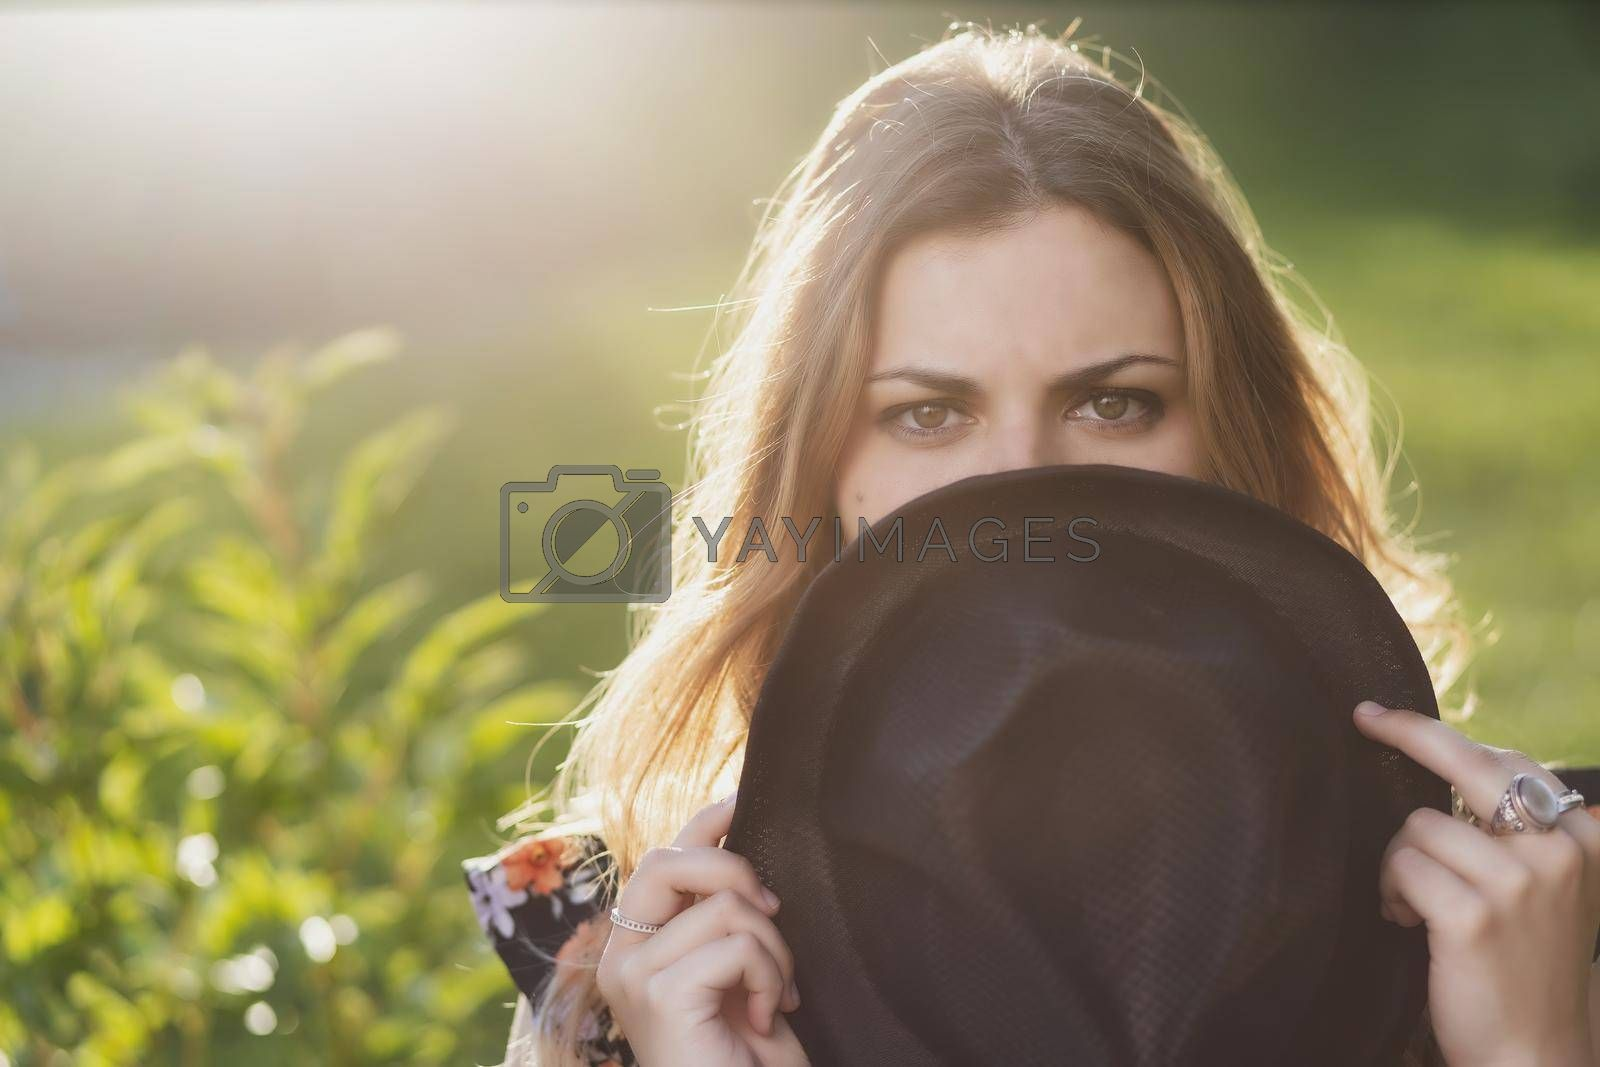 Royalty free image of Portrait of beautiful girl hiding her face behind hat. by Frank11